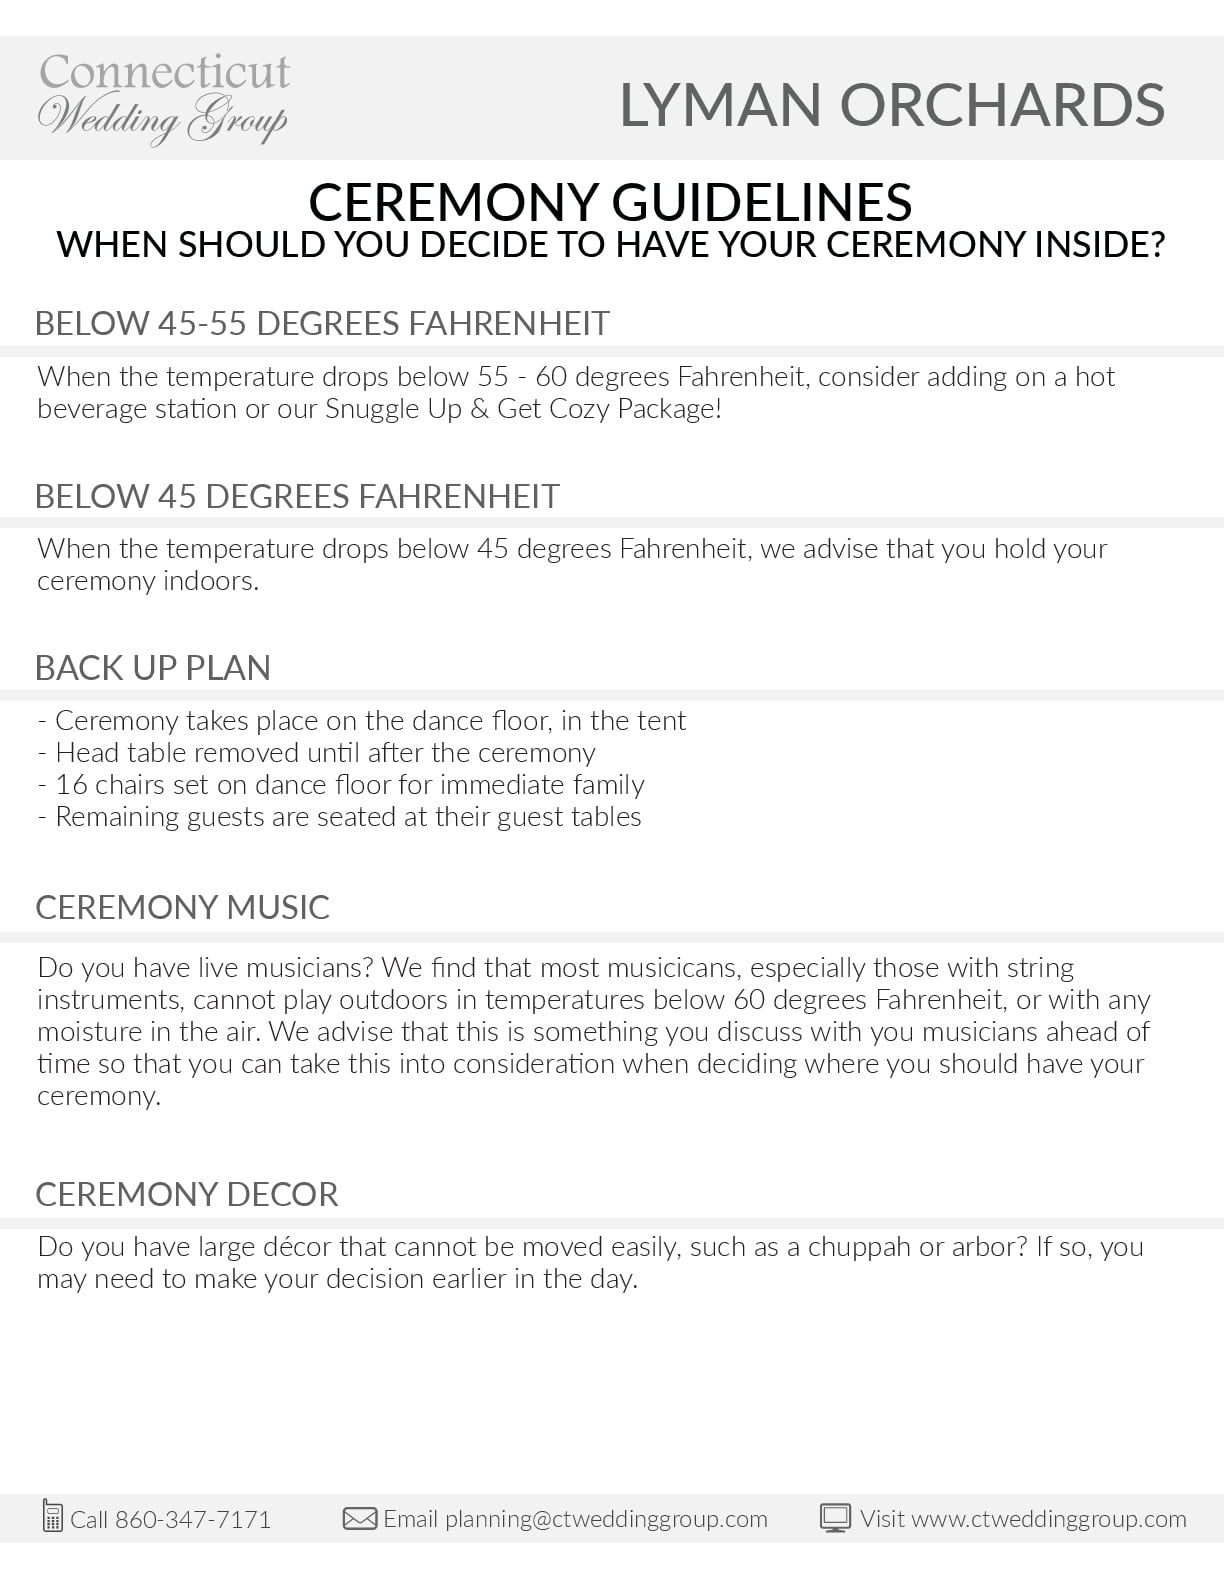 117_15180_Ceremony-Guidelines_-Lyman-Orchards-001-min